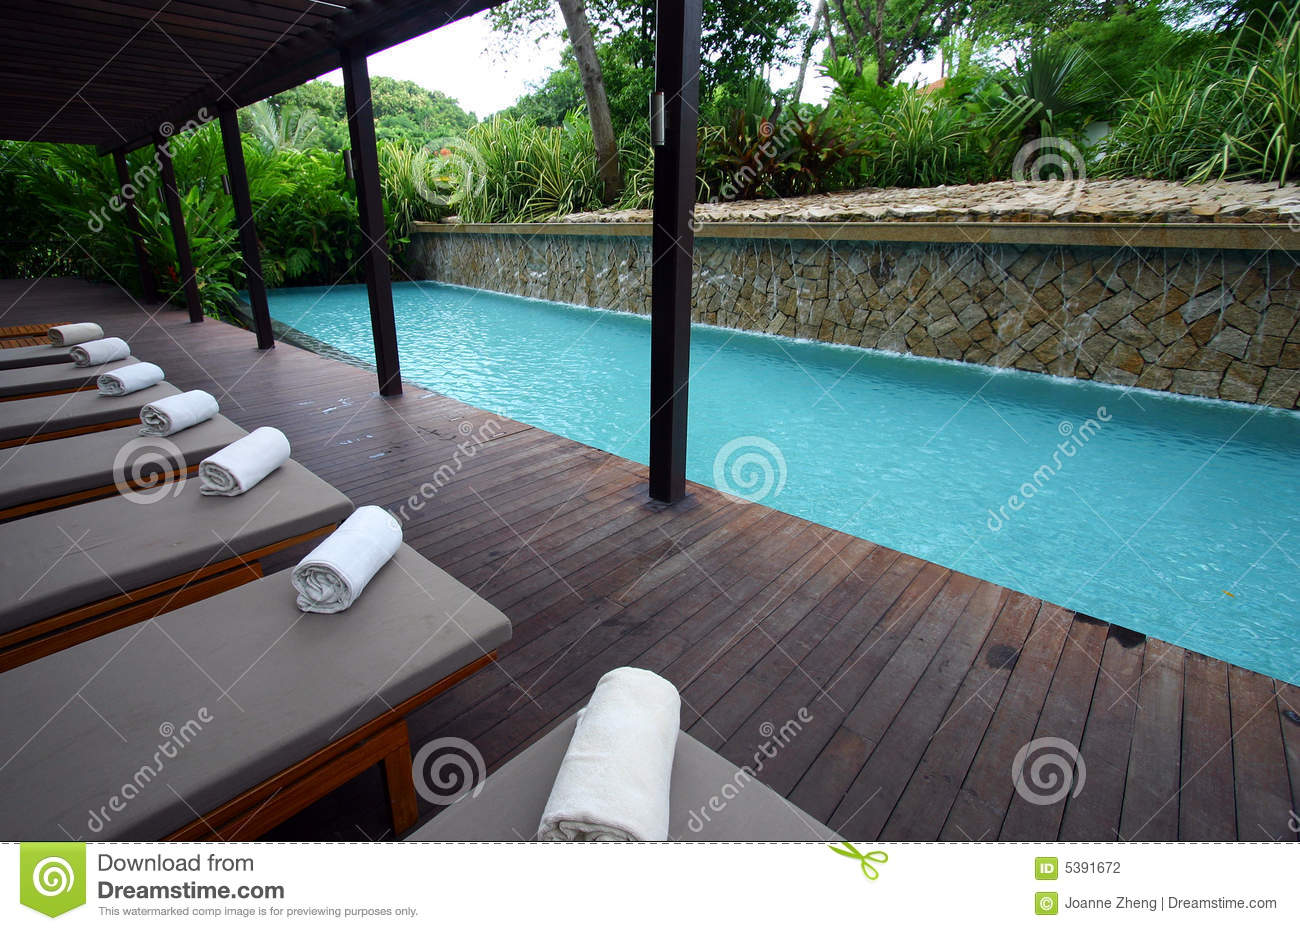 Blue spa resort poolside chaise lounges